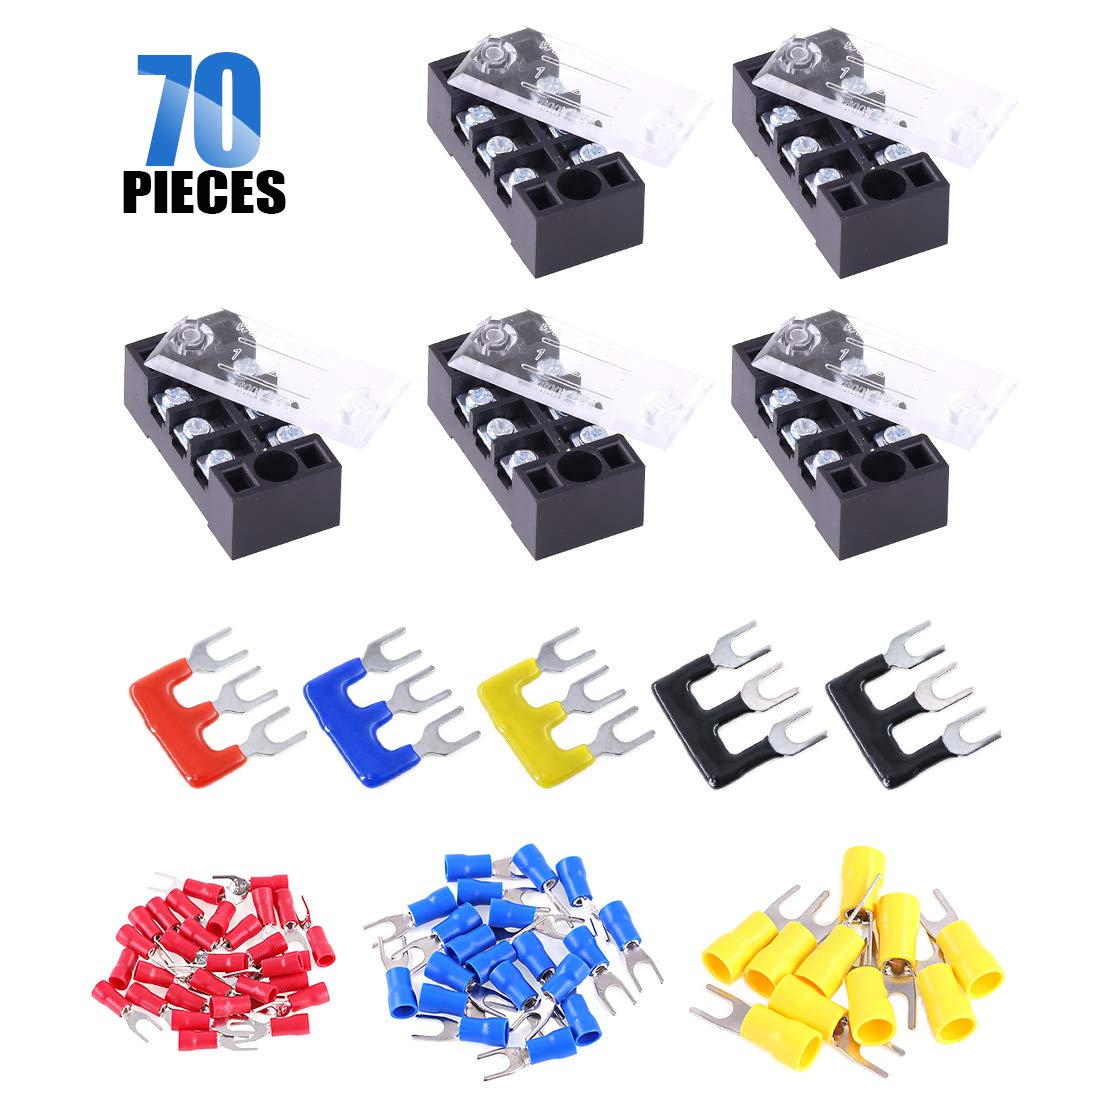 Terminal Block Set 5Sets 60Pcs Insulated Fork Wire Connector 5Pcs 5 Positions 600V 15A Dual Row Screw Terminals Strip 5P+Fork Connector Glarks 70Pcs 5Pcs Pre-Insulated Barrier Strips